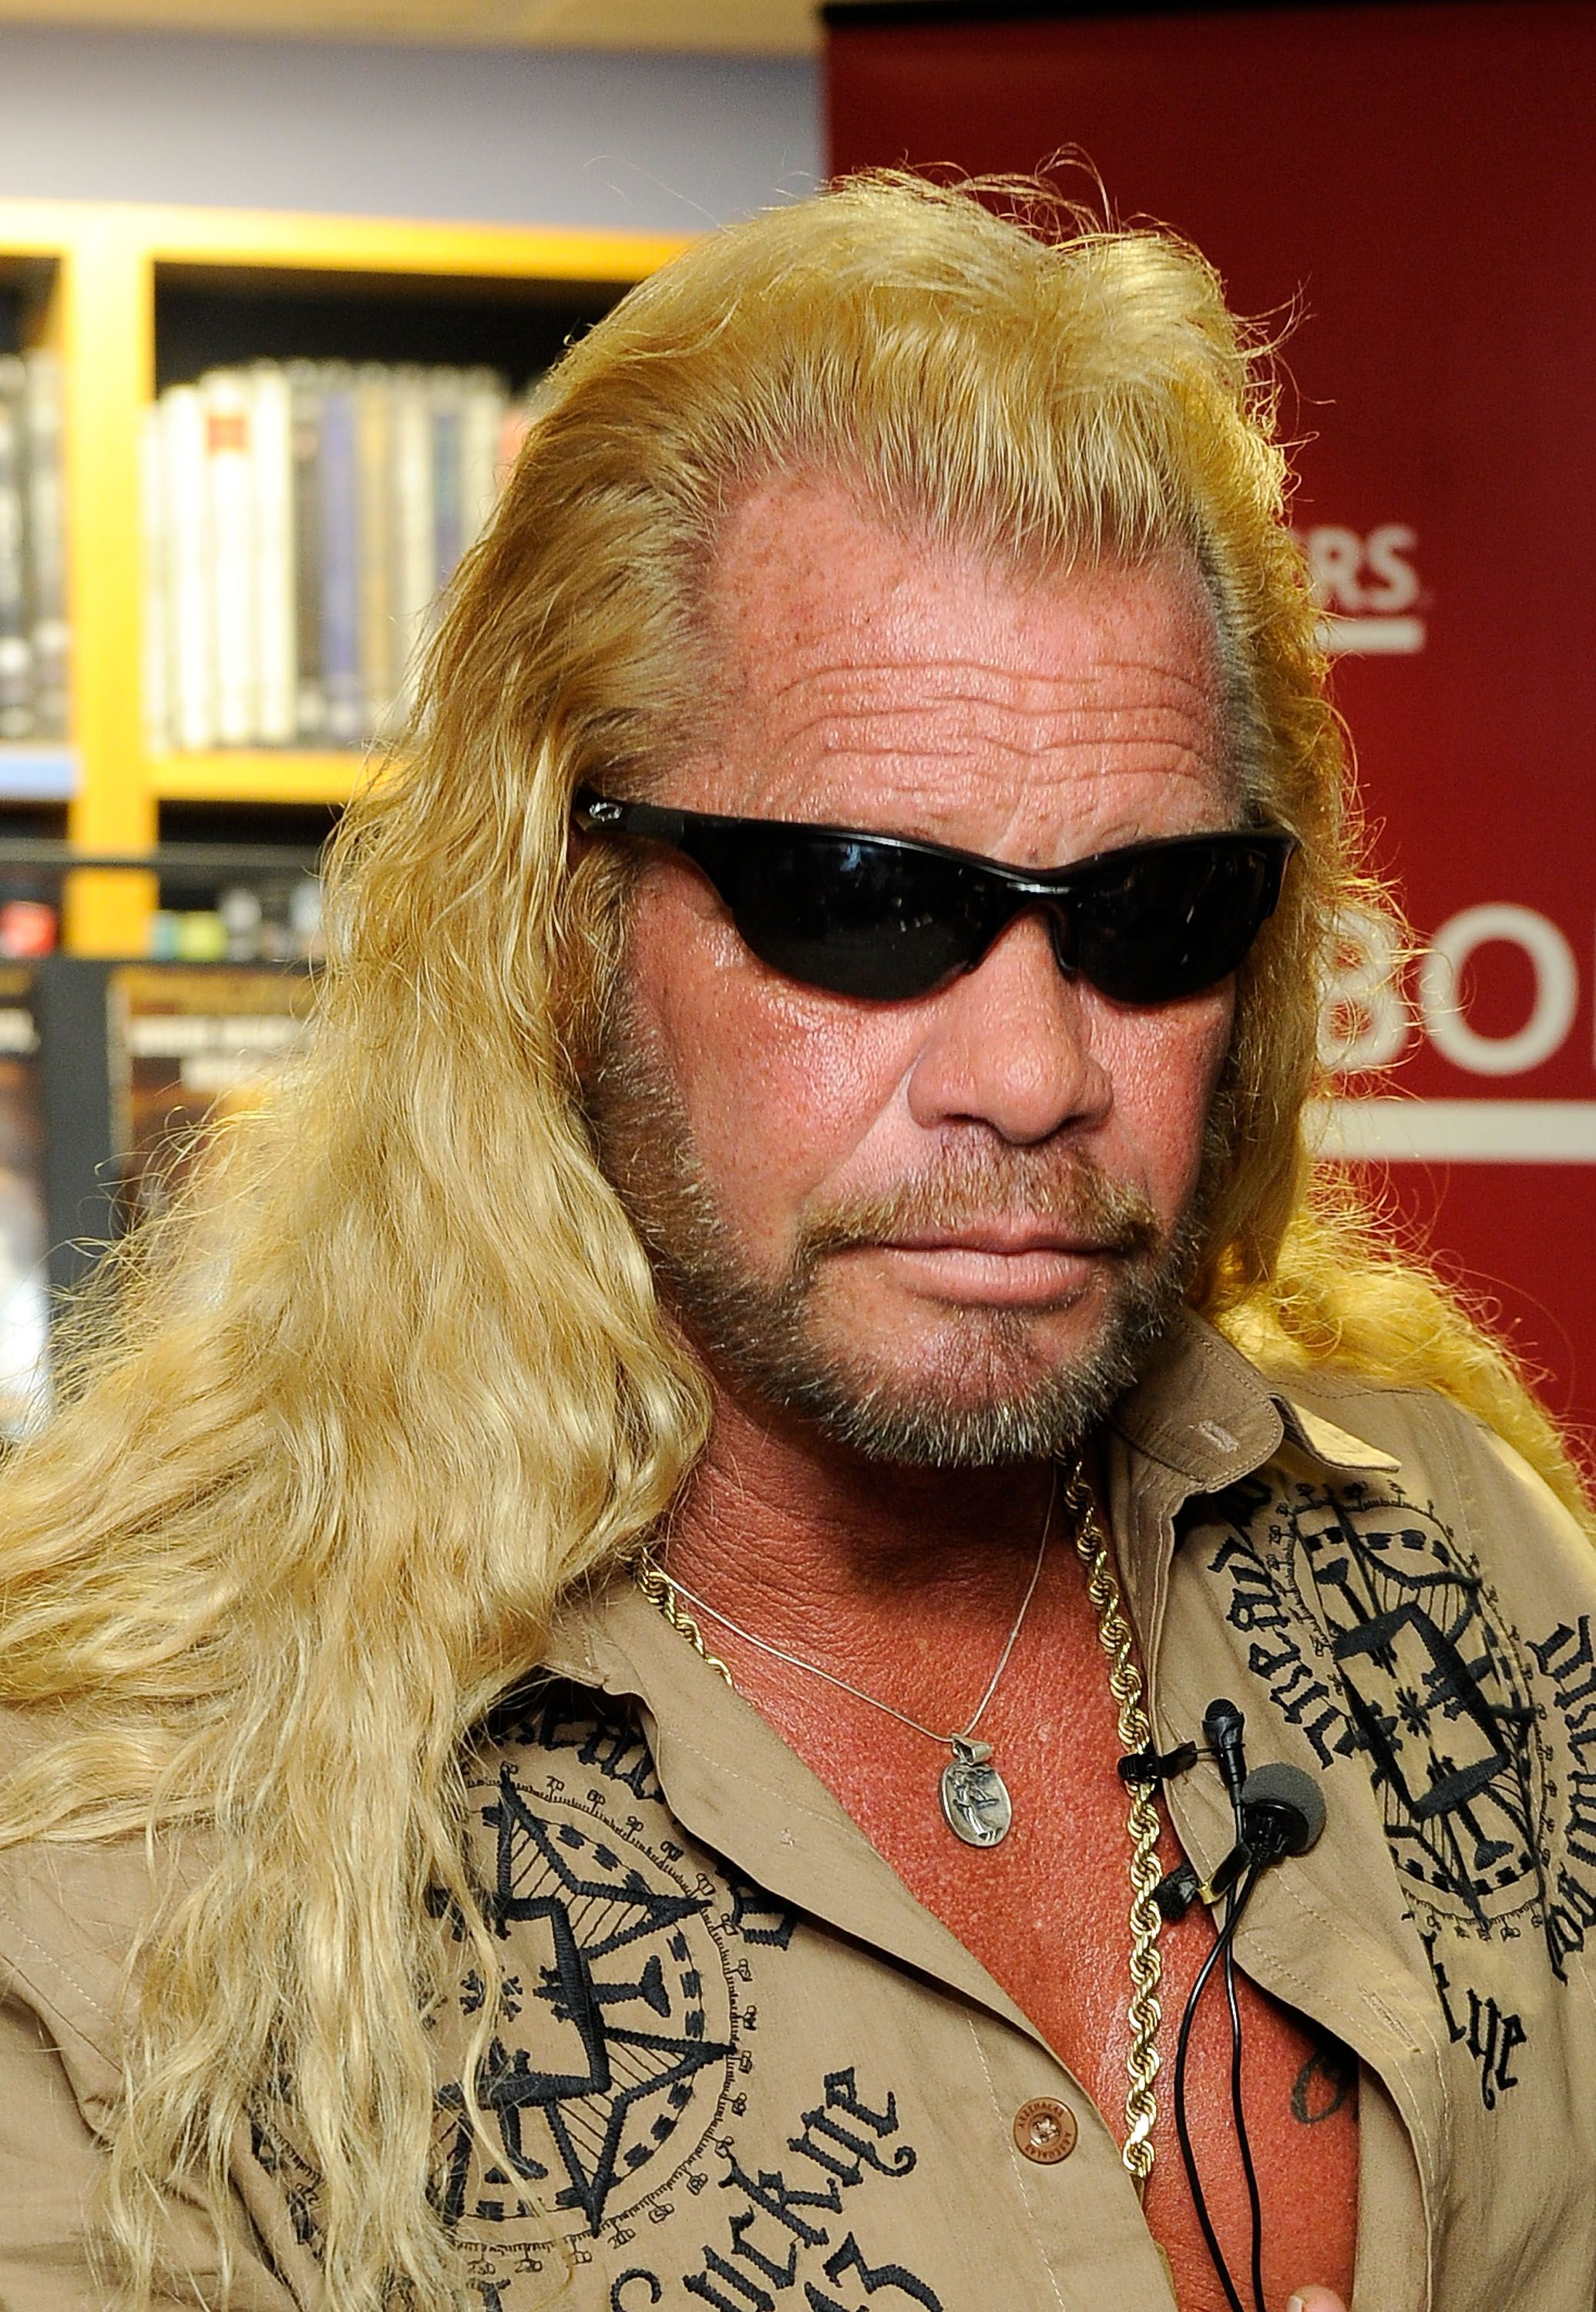 """Duane Chapman, known in the media as """"Dog the Bounty Hunter"""" promotes his book """"When Mercy Is Shown, Mercy Is Given"""" at Borders Wall Street on March 19, 2010 in New York City 